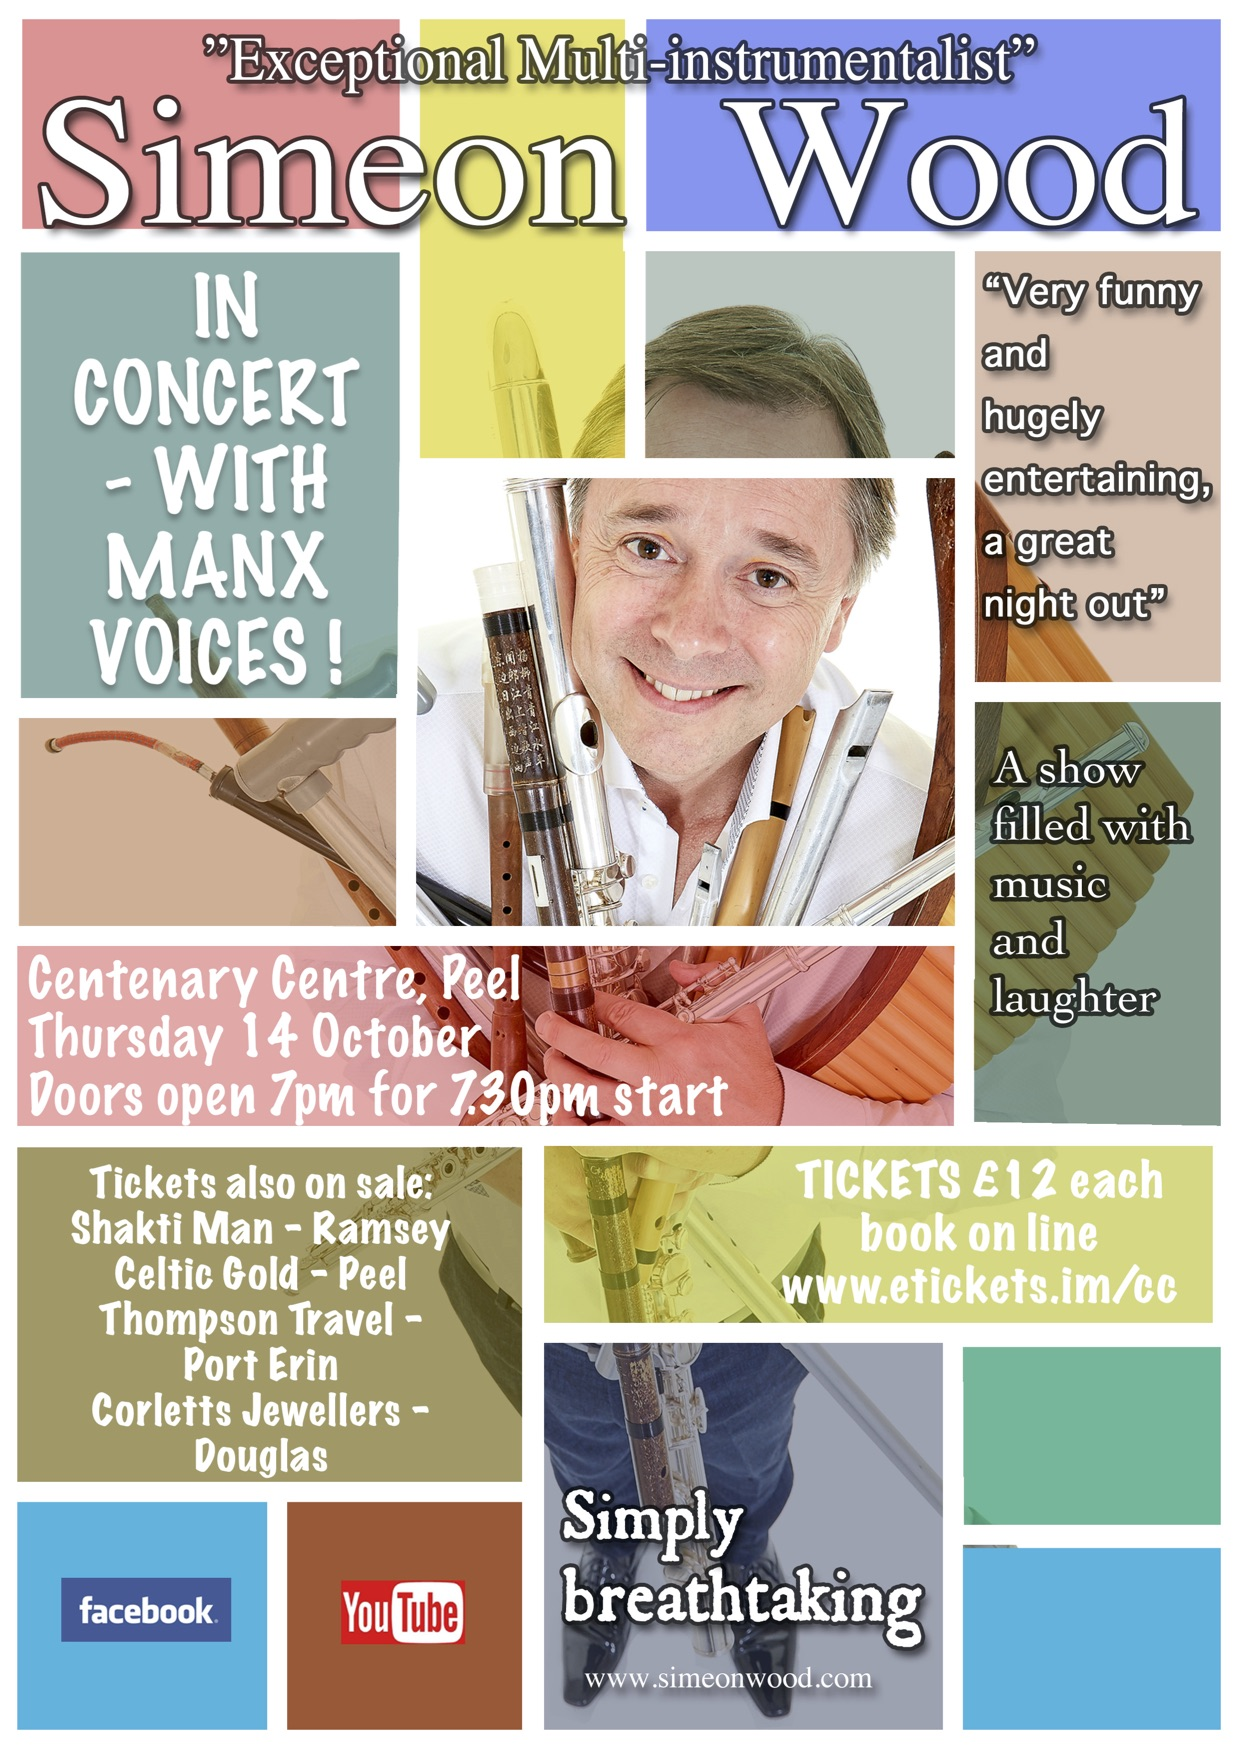 Simeon Wood in concert with Manx Voices @ Centenary Centre